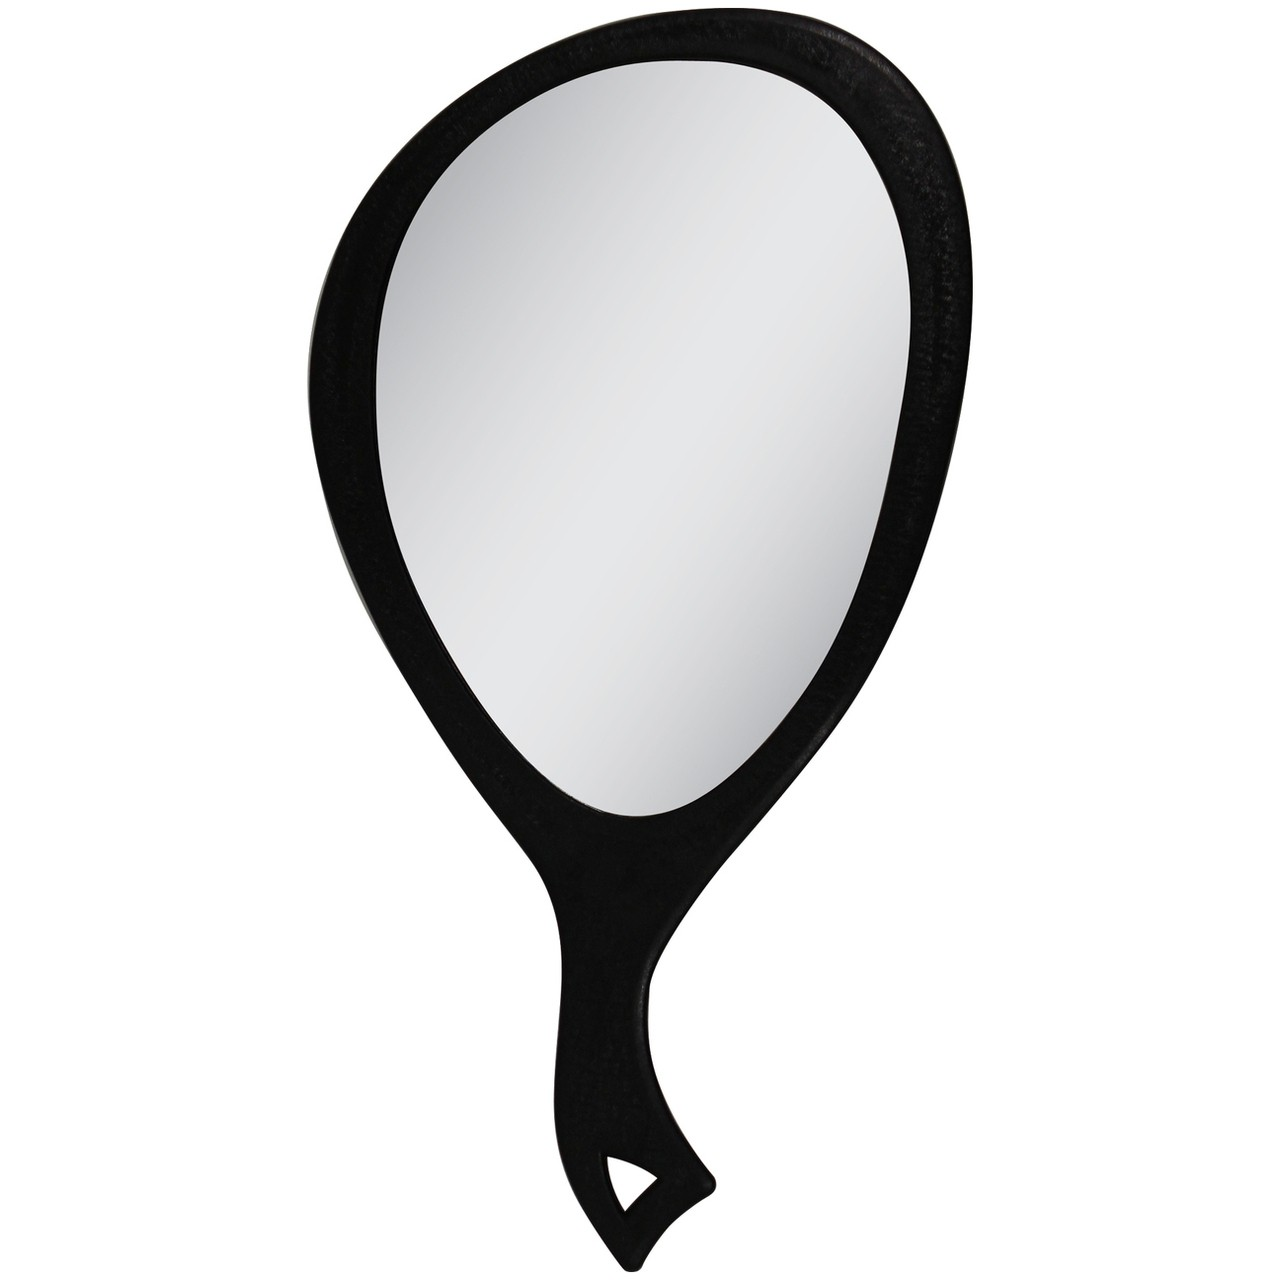 Zadro Large Teardrop Hand Held Mirror 1X - Black